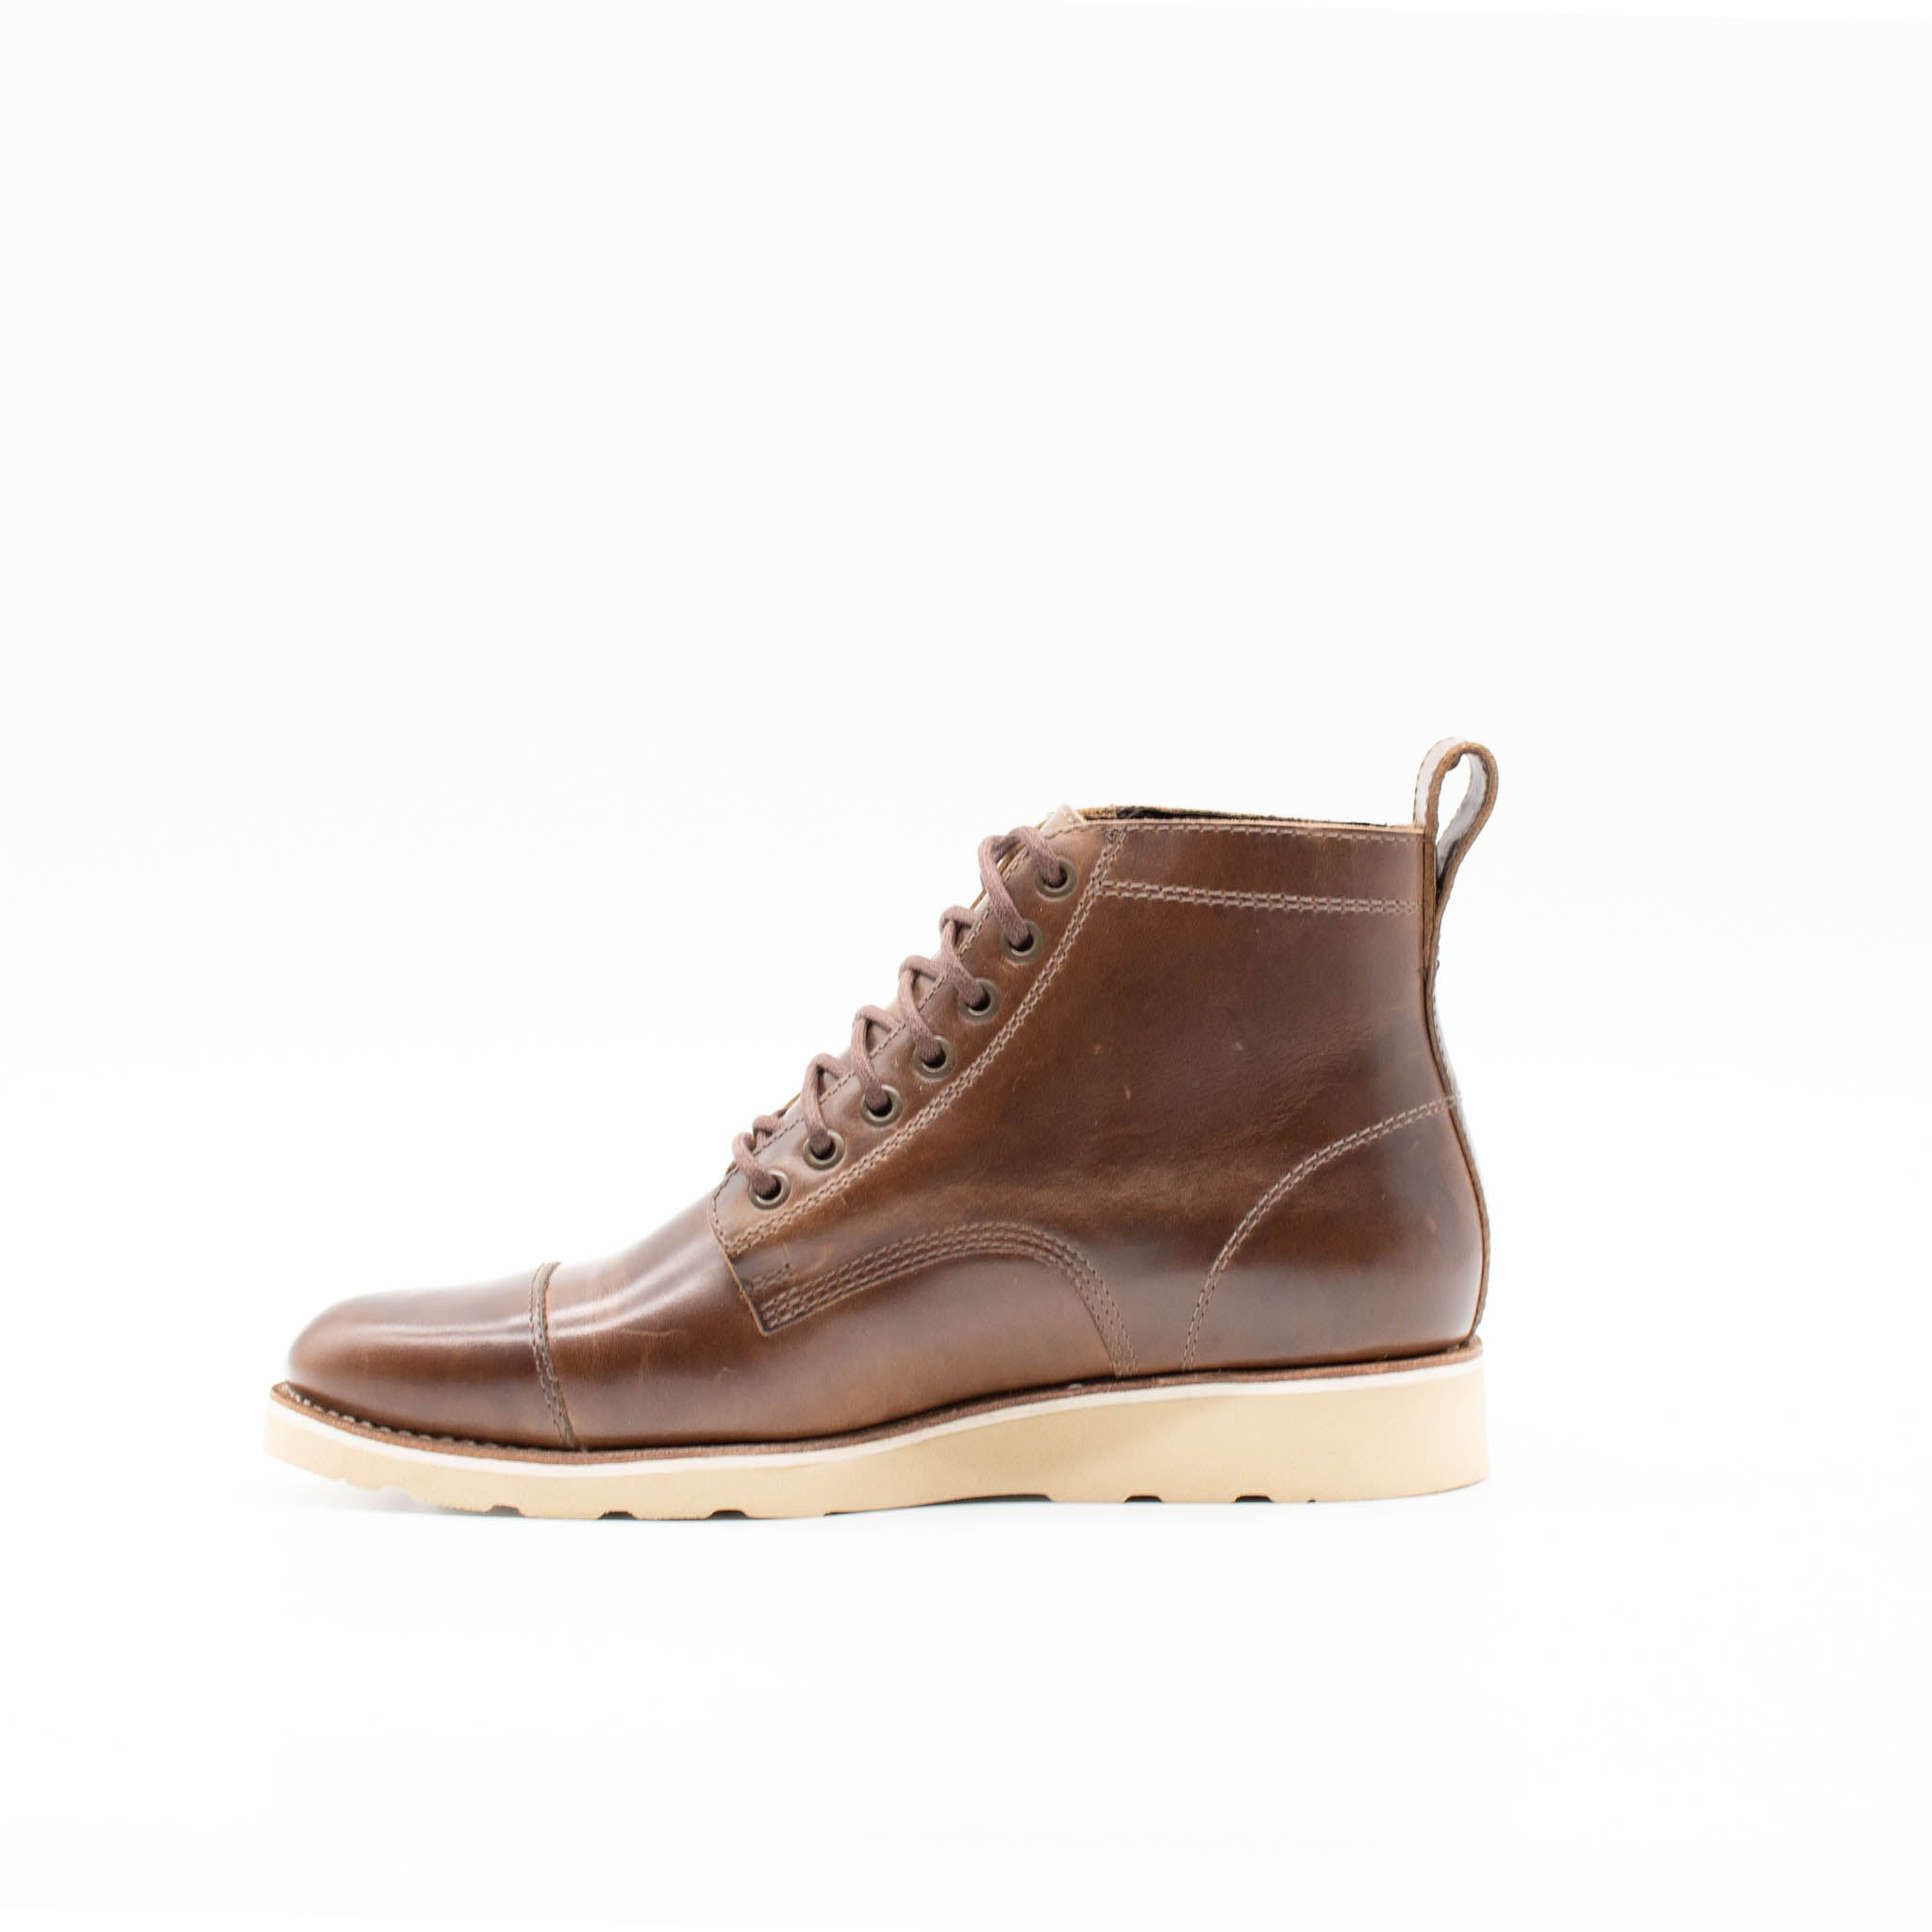 Lou Dark Natural by HELM Boots